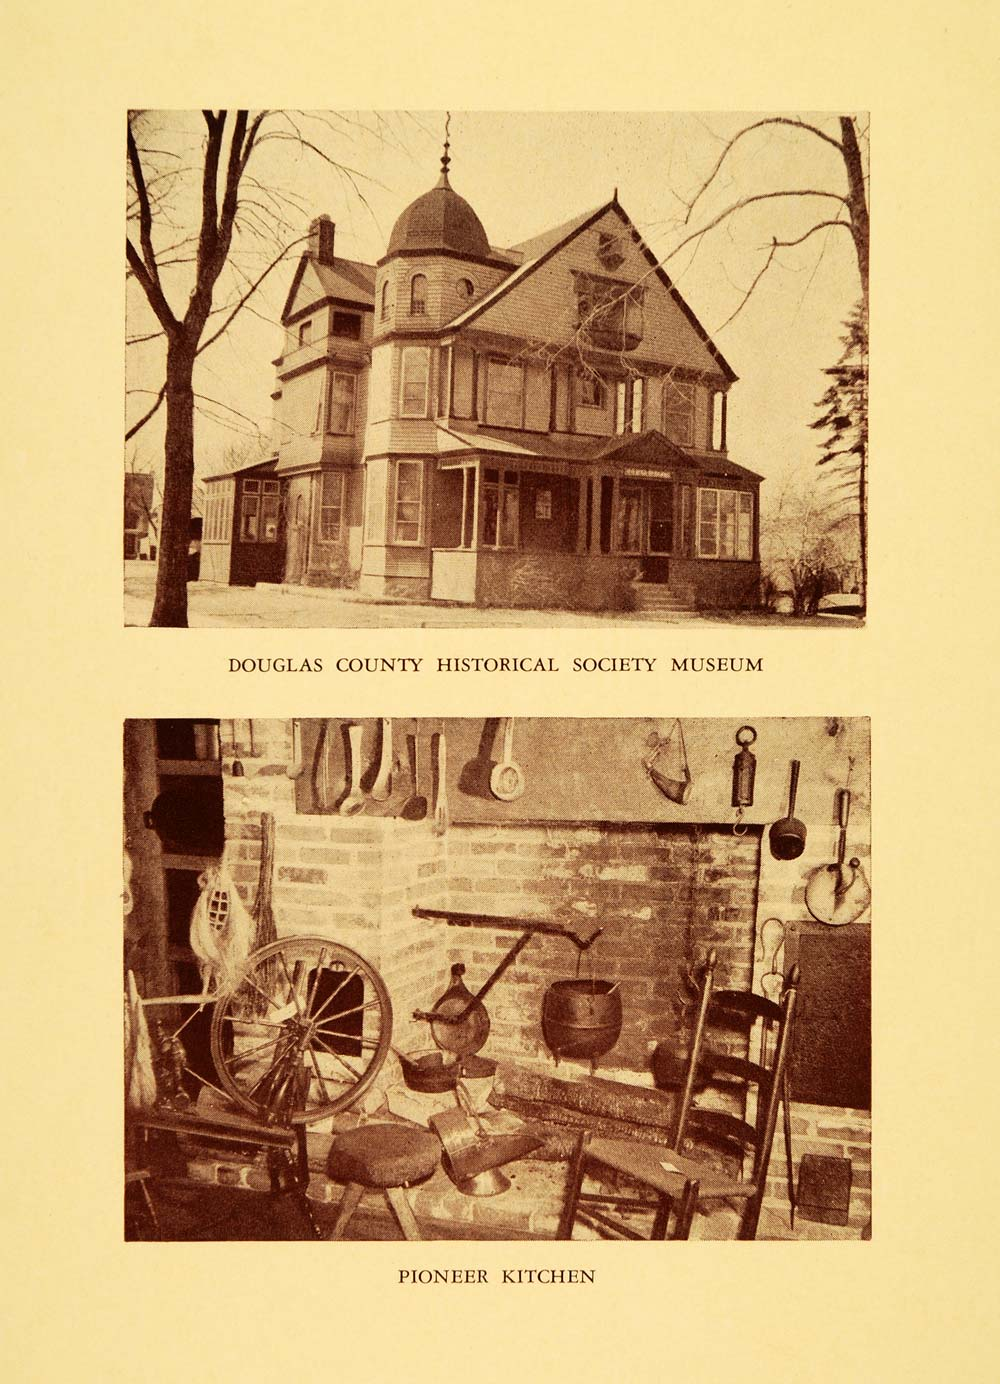 1948 Print Douglas County Historical Society Museum - ORIGINAL HISTORIC WIS1